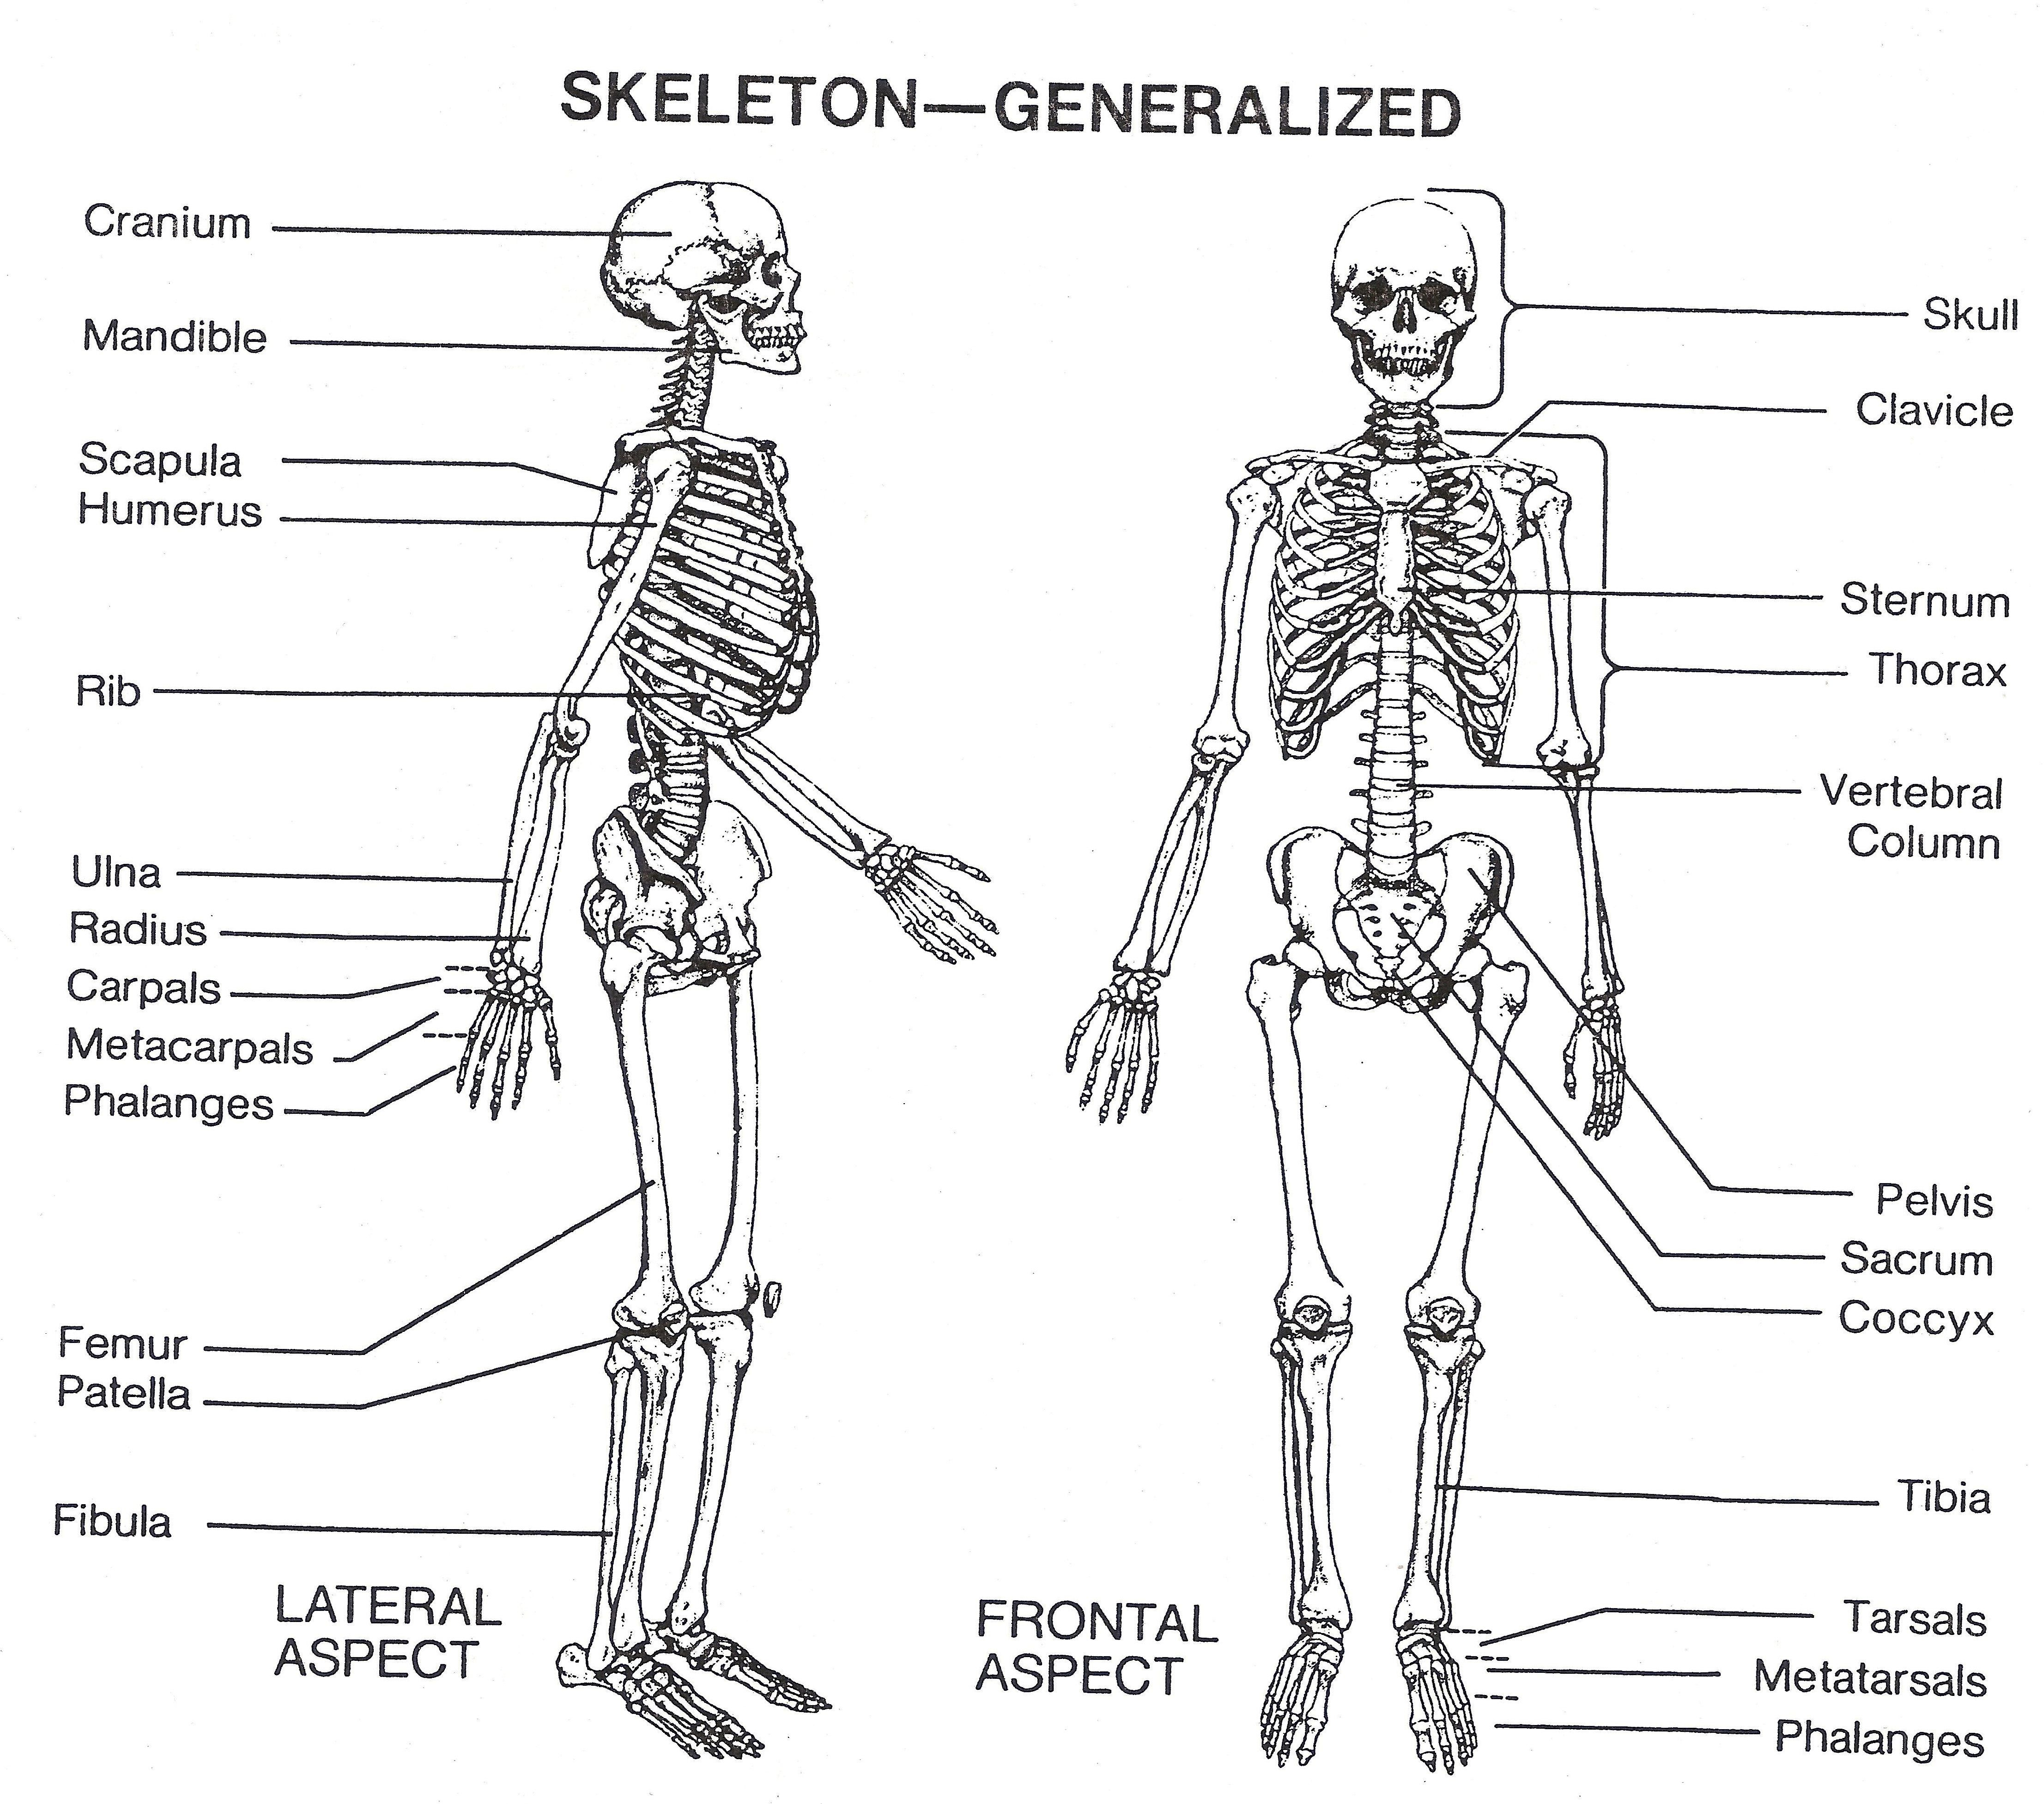 Human Skeleton Diagram Unlabeled Human Skeleton Diagram